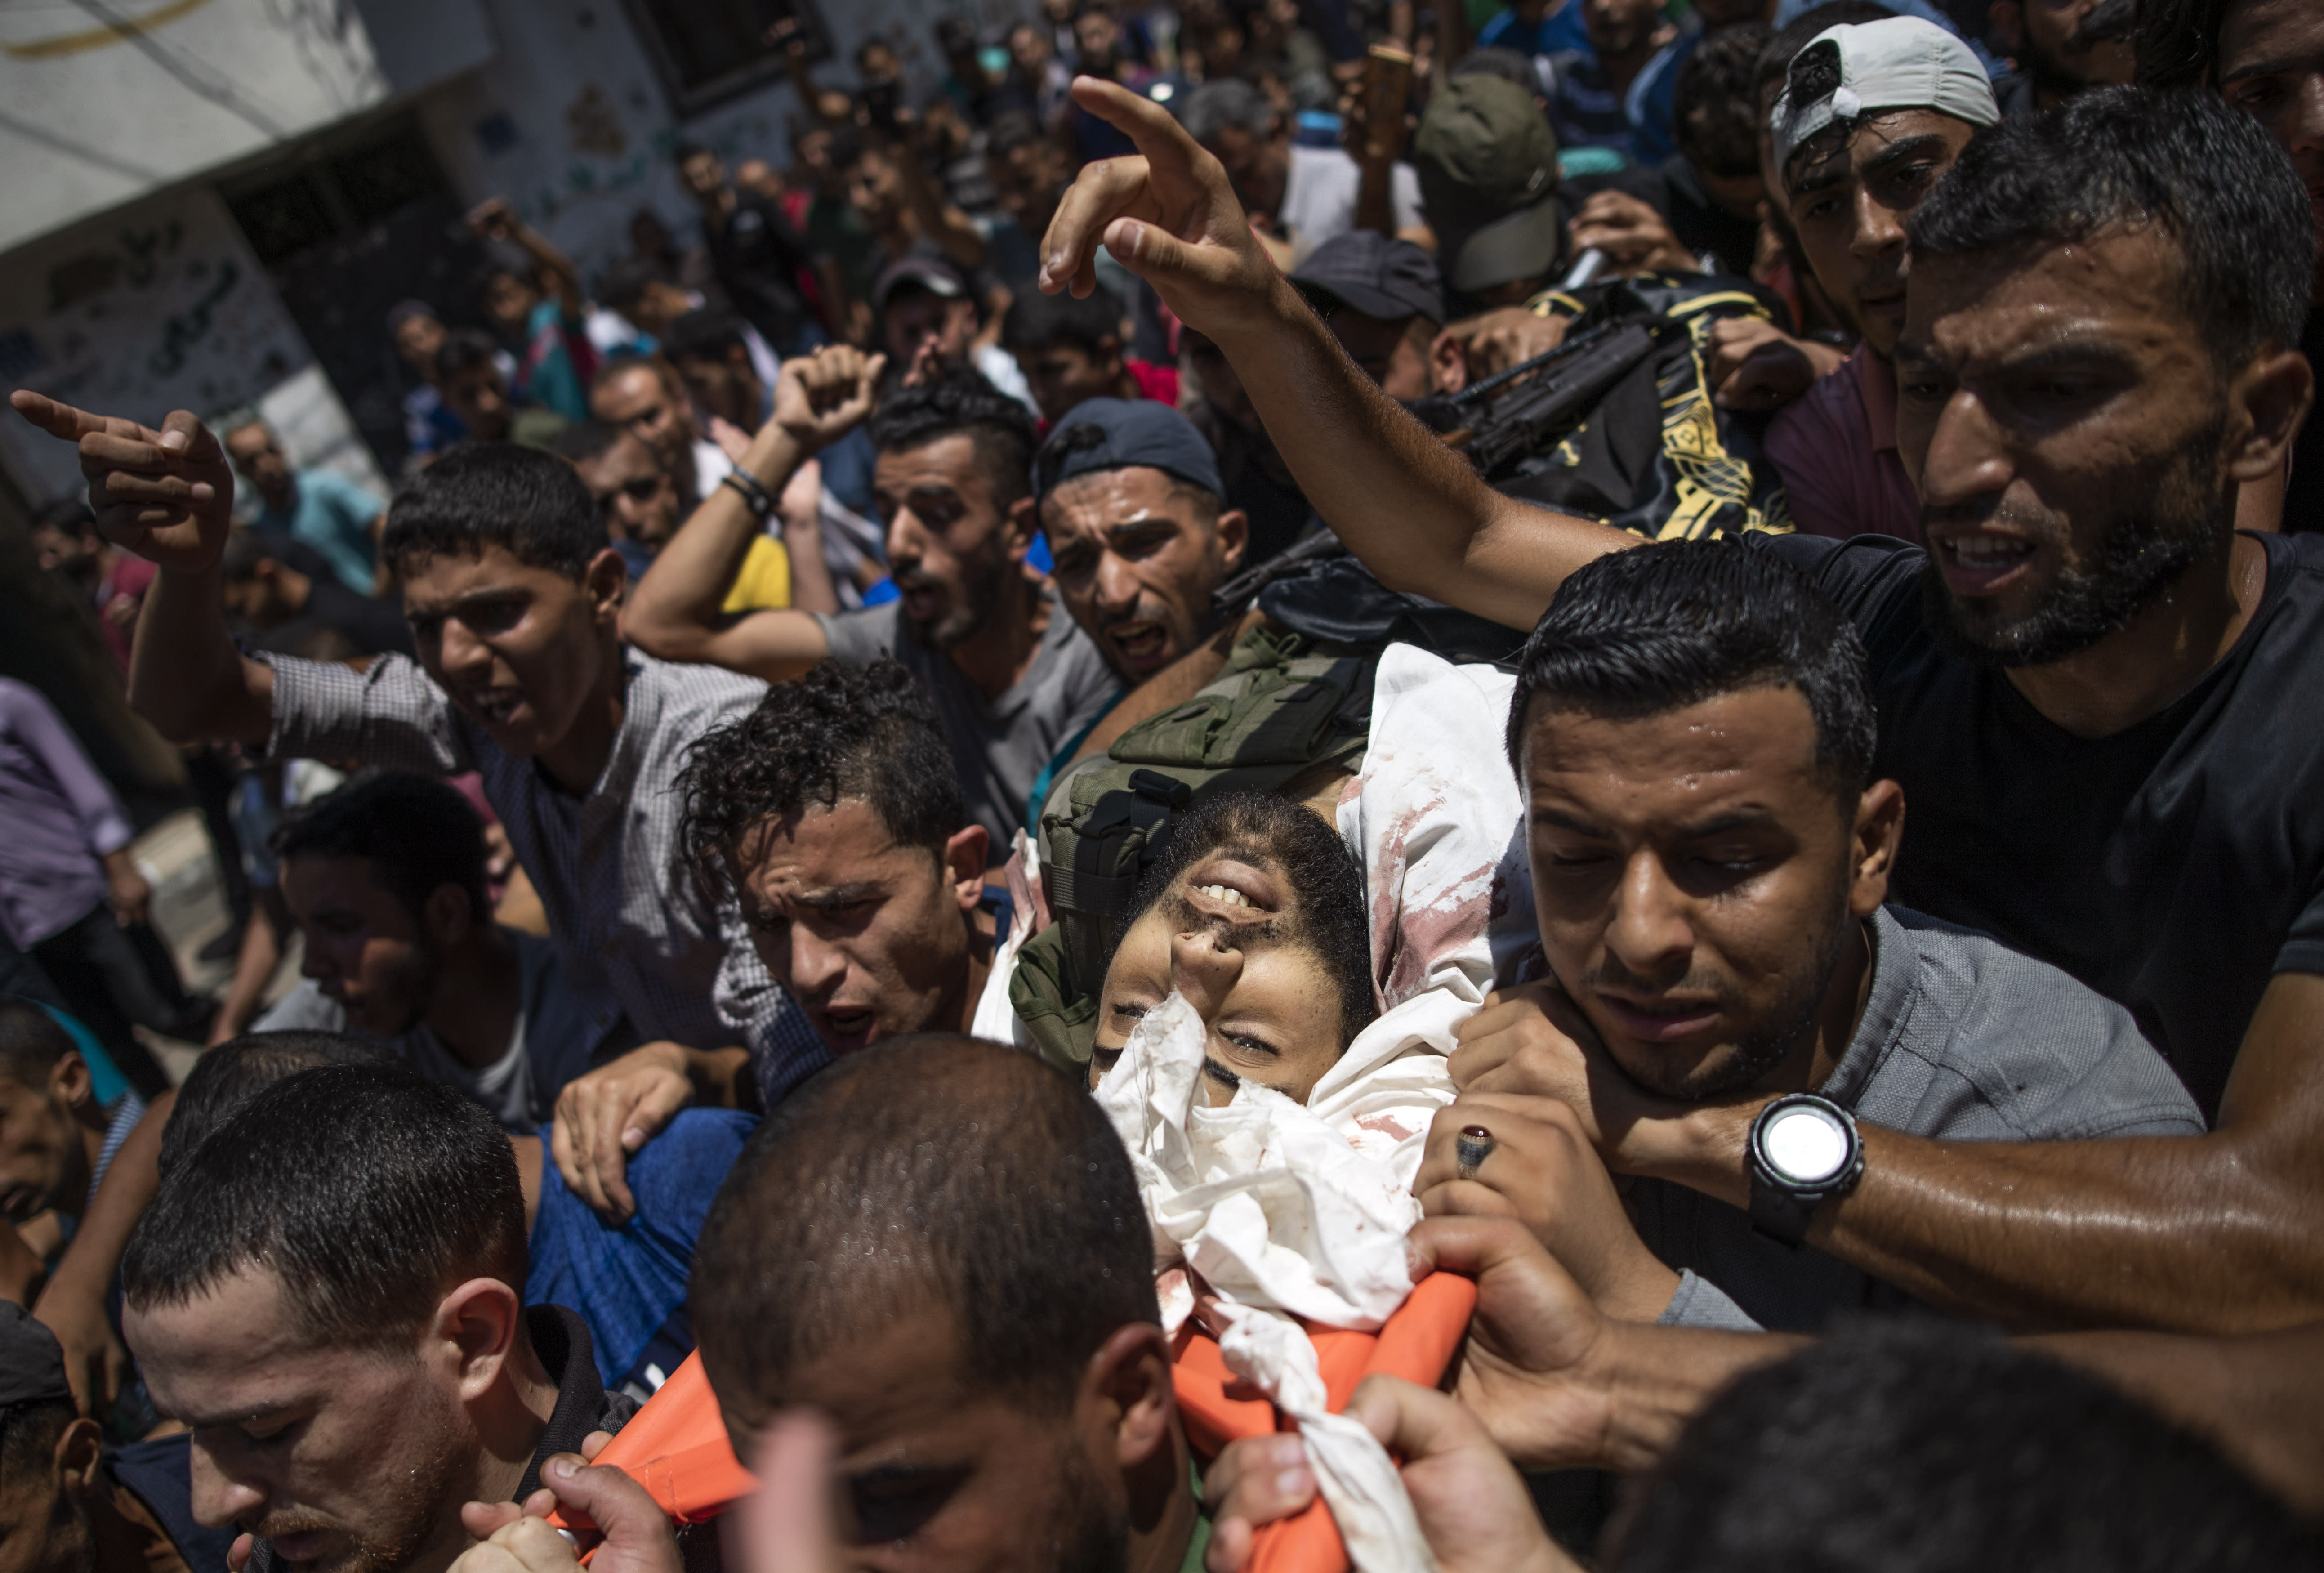 Mourners chant angry slogans as they carry the body of Islamic Jihad militant, Mahmoud al-Walayda, 24, during his funeral in the Jabaliya refugee camp, northern Gaza Strip, Sunday, Aug. 18, 2019. Gaza's Health Ministry said Israeli troops killed three Palestinians and severely wounded a fourth near the heavily guarded perimeter fence. The Israeli military said Sunday that a helicopter and a tank fired at a group of armed suspects near the fence overnight. (AP Photo/Khalil Hamra)